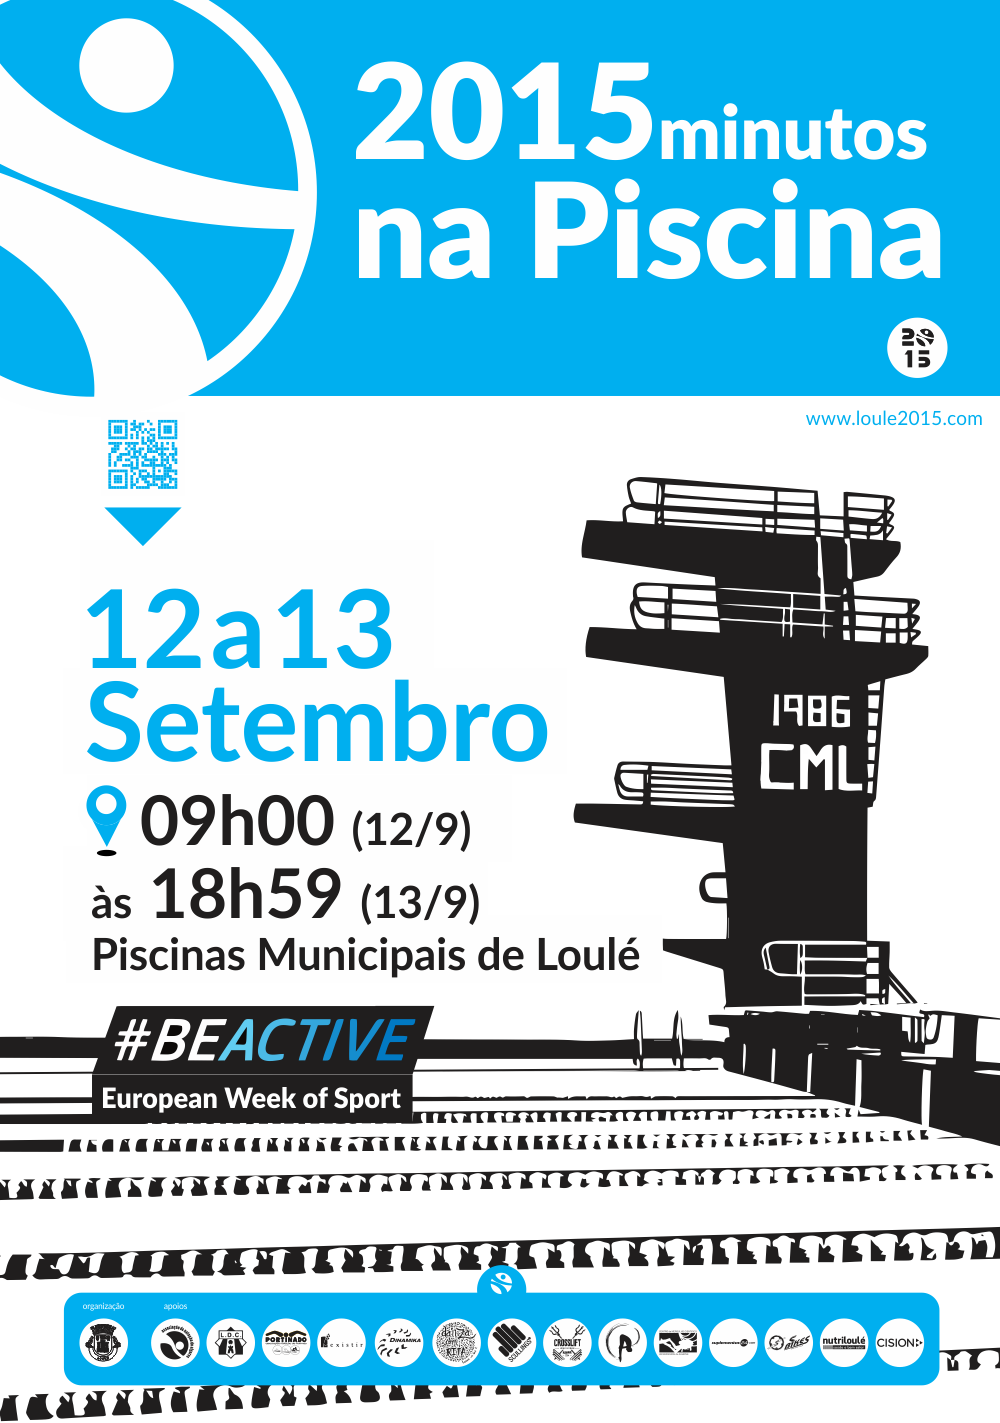 cartaz_2015minutos_na_piscina_vrs4